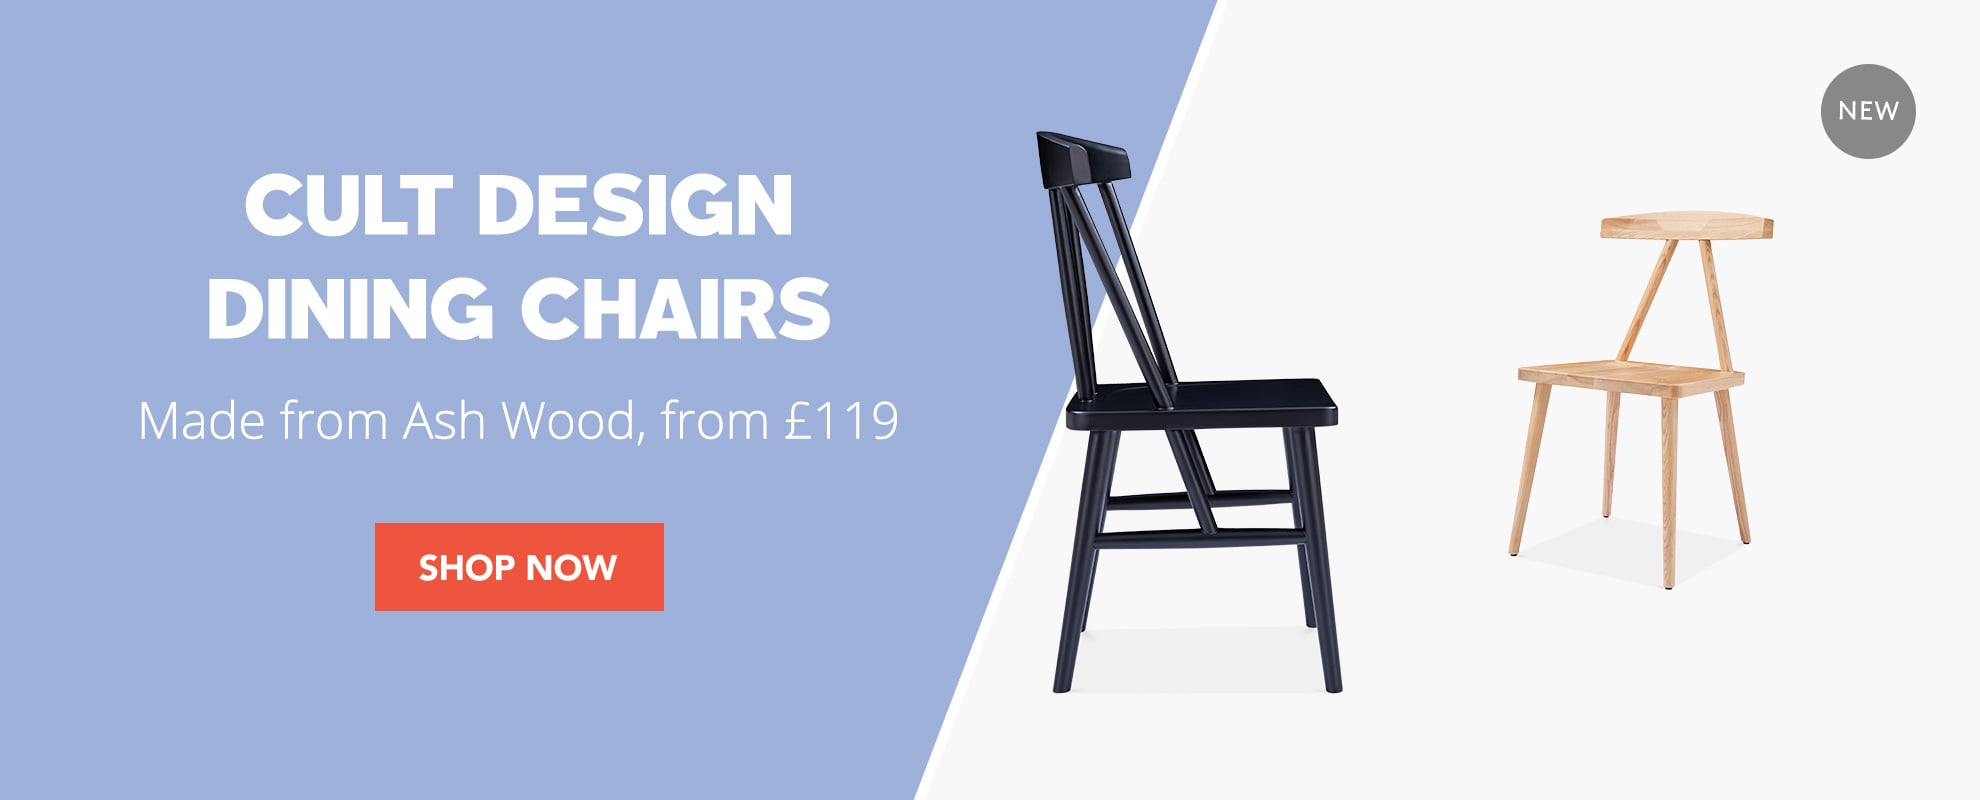 New Dining chairs